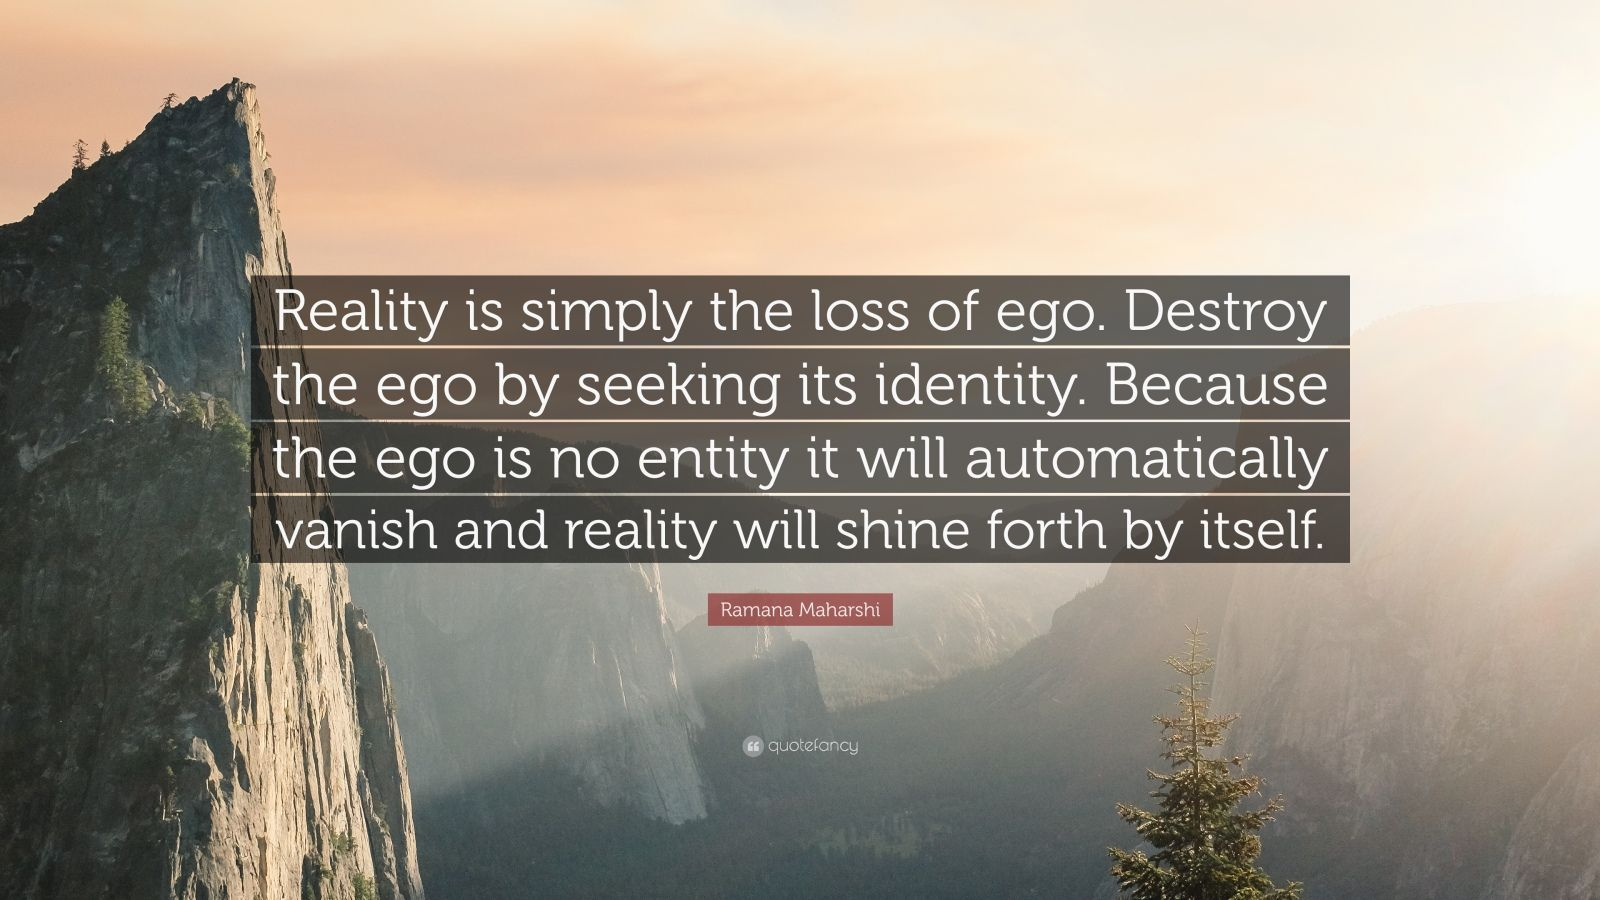 """Ramana Maharshi Quote: """"Reality is simply the loss of ego. Destroy the ego by seeking its identity. Because the ego is no entity it will automatically vanish and reality will shine forth by itself."""""""